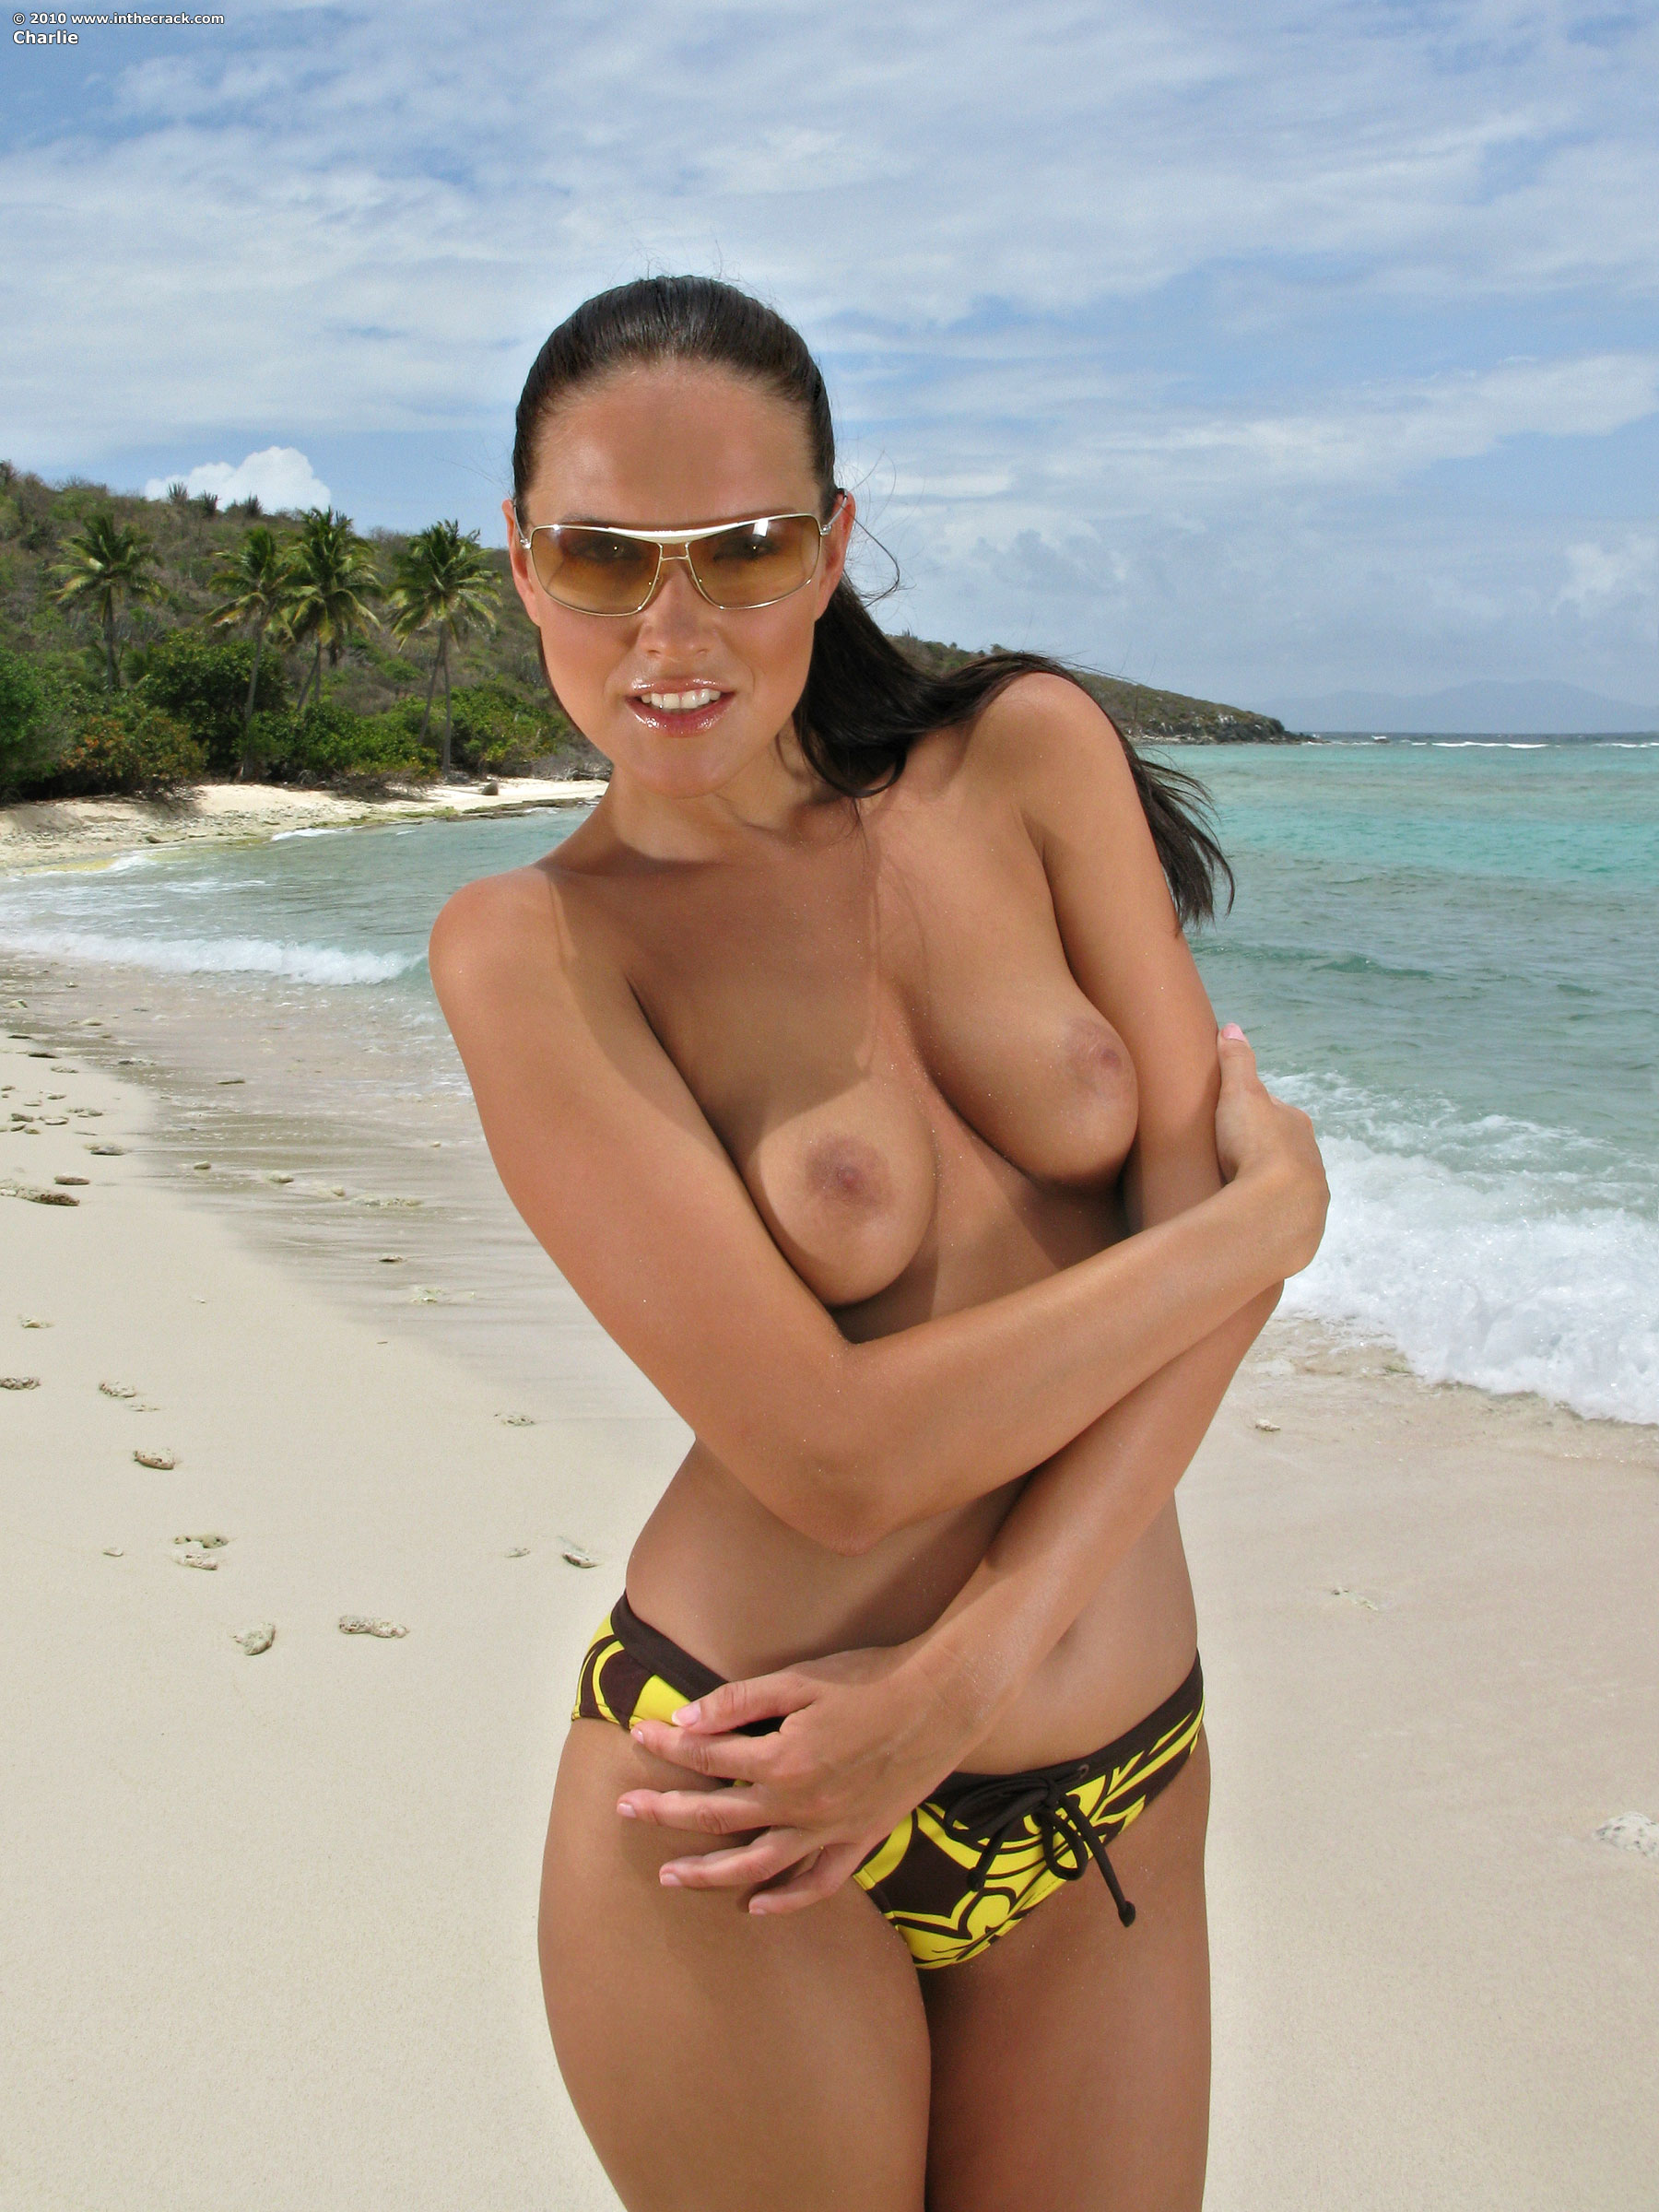 Wet beauty takes off her bikini and shows her tiny hole in sand on exotic beach